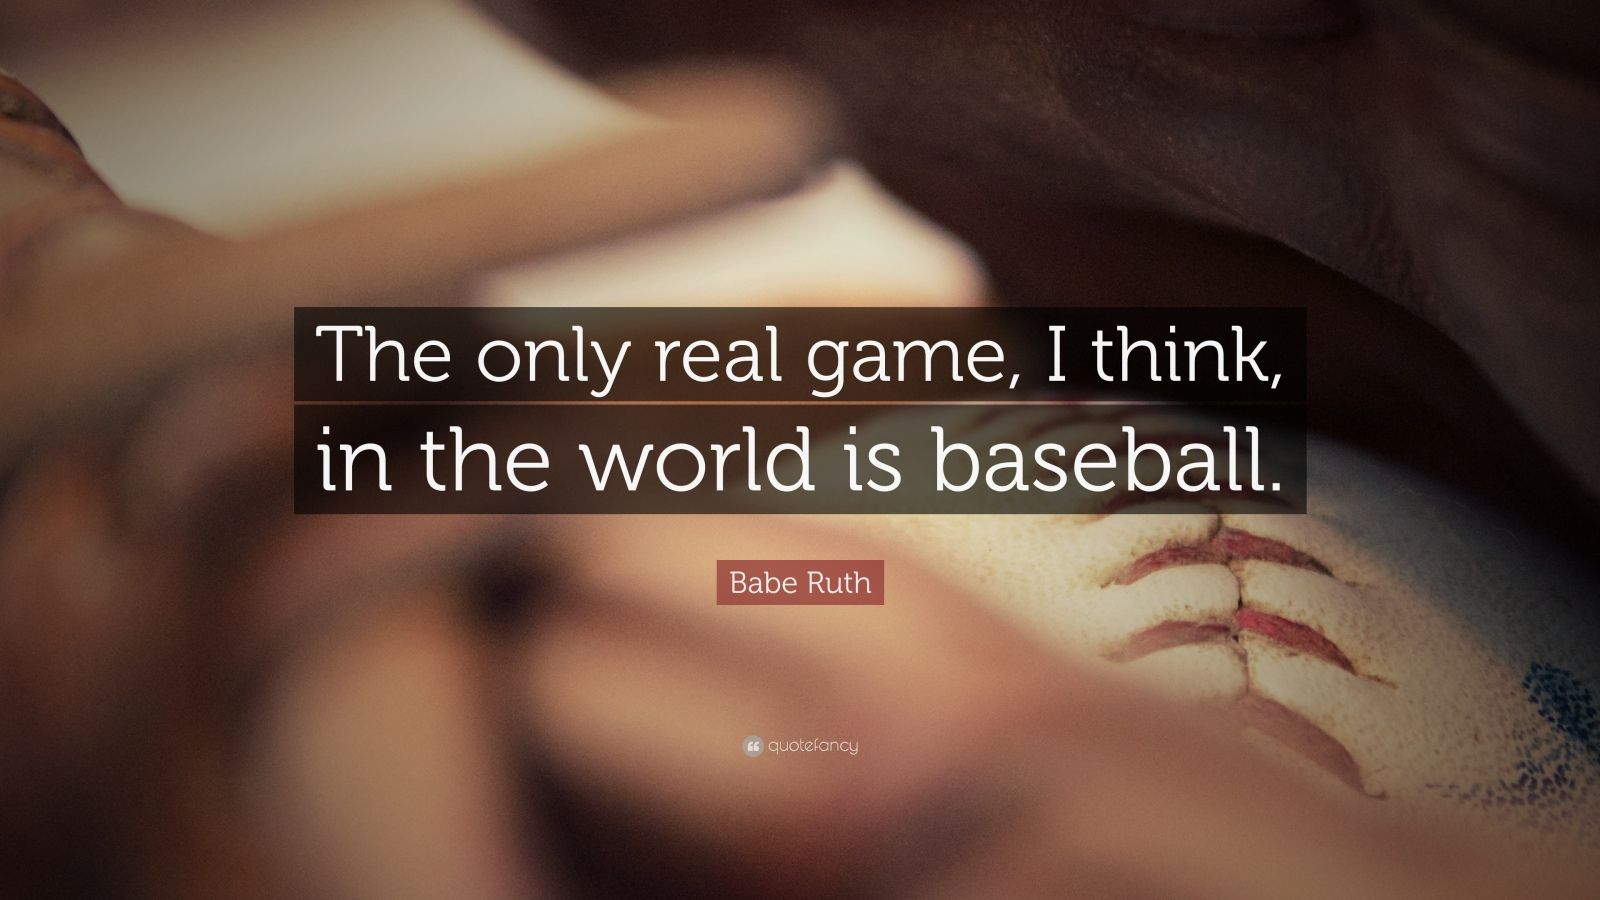 The Real Babe Ruth